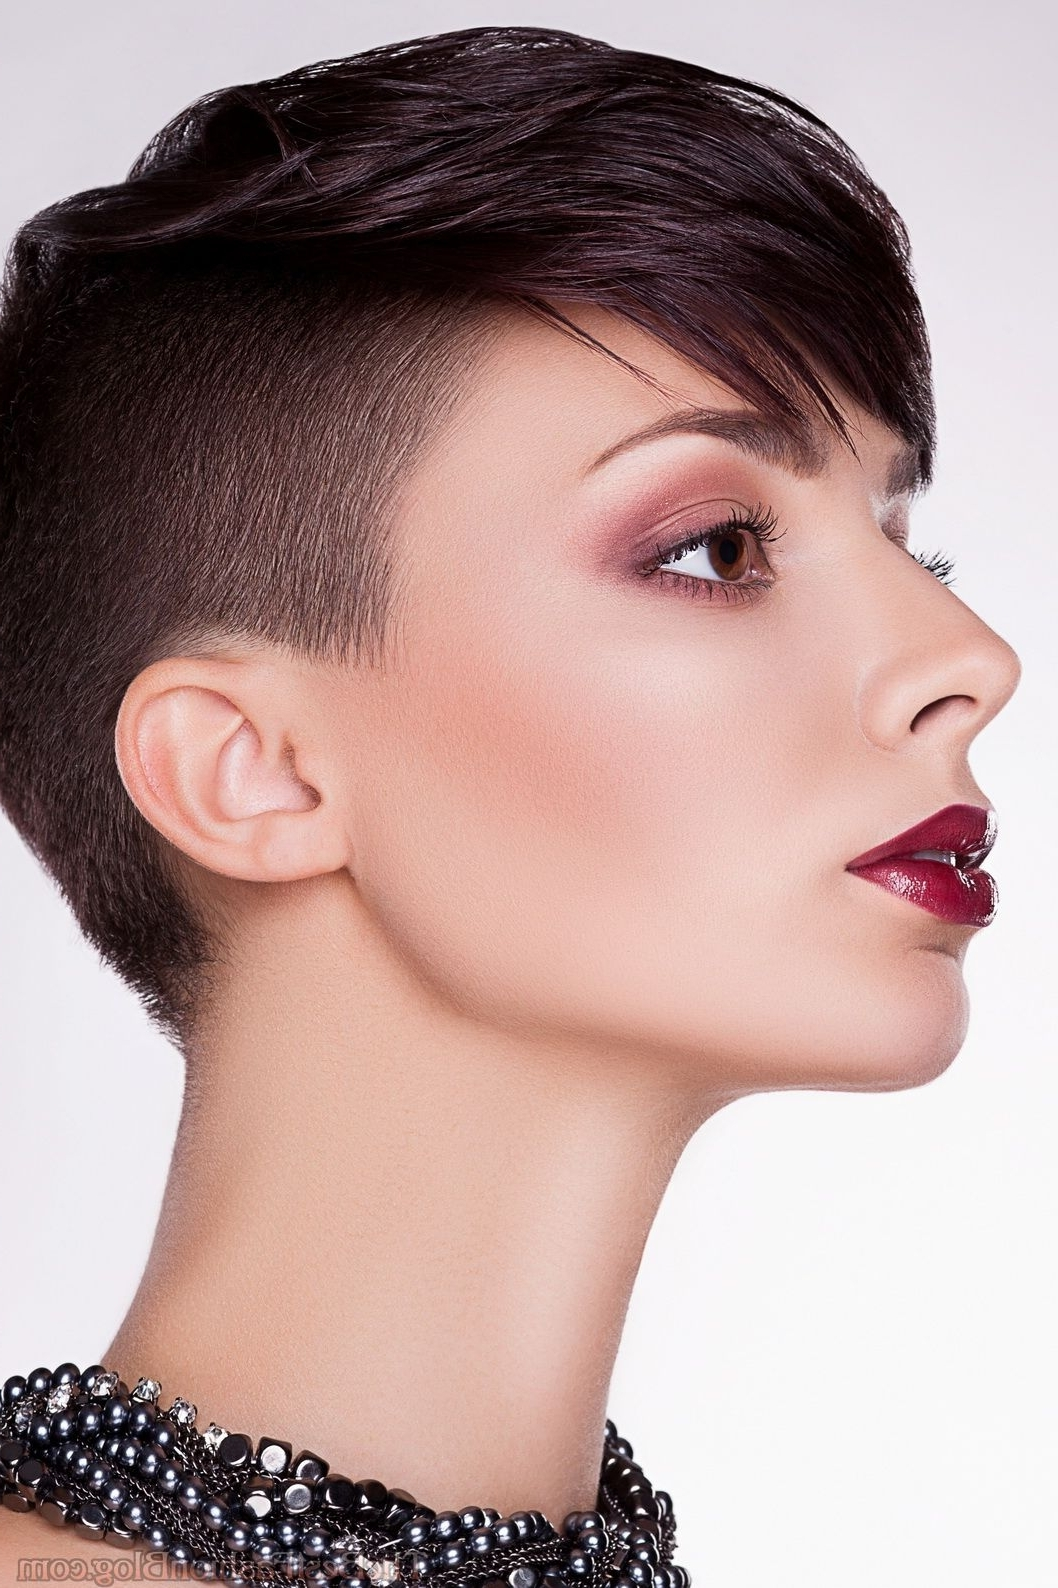 Pixie Haircuts For Women 2018 Throughout Most Up To Date Buzzed Pixie Hairstyles (View 4 of 15)